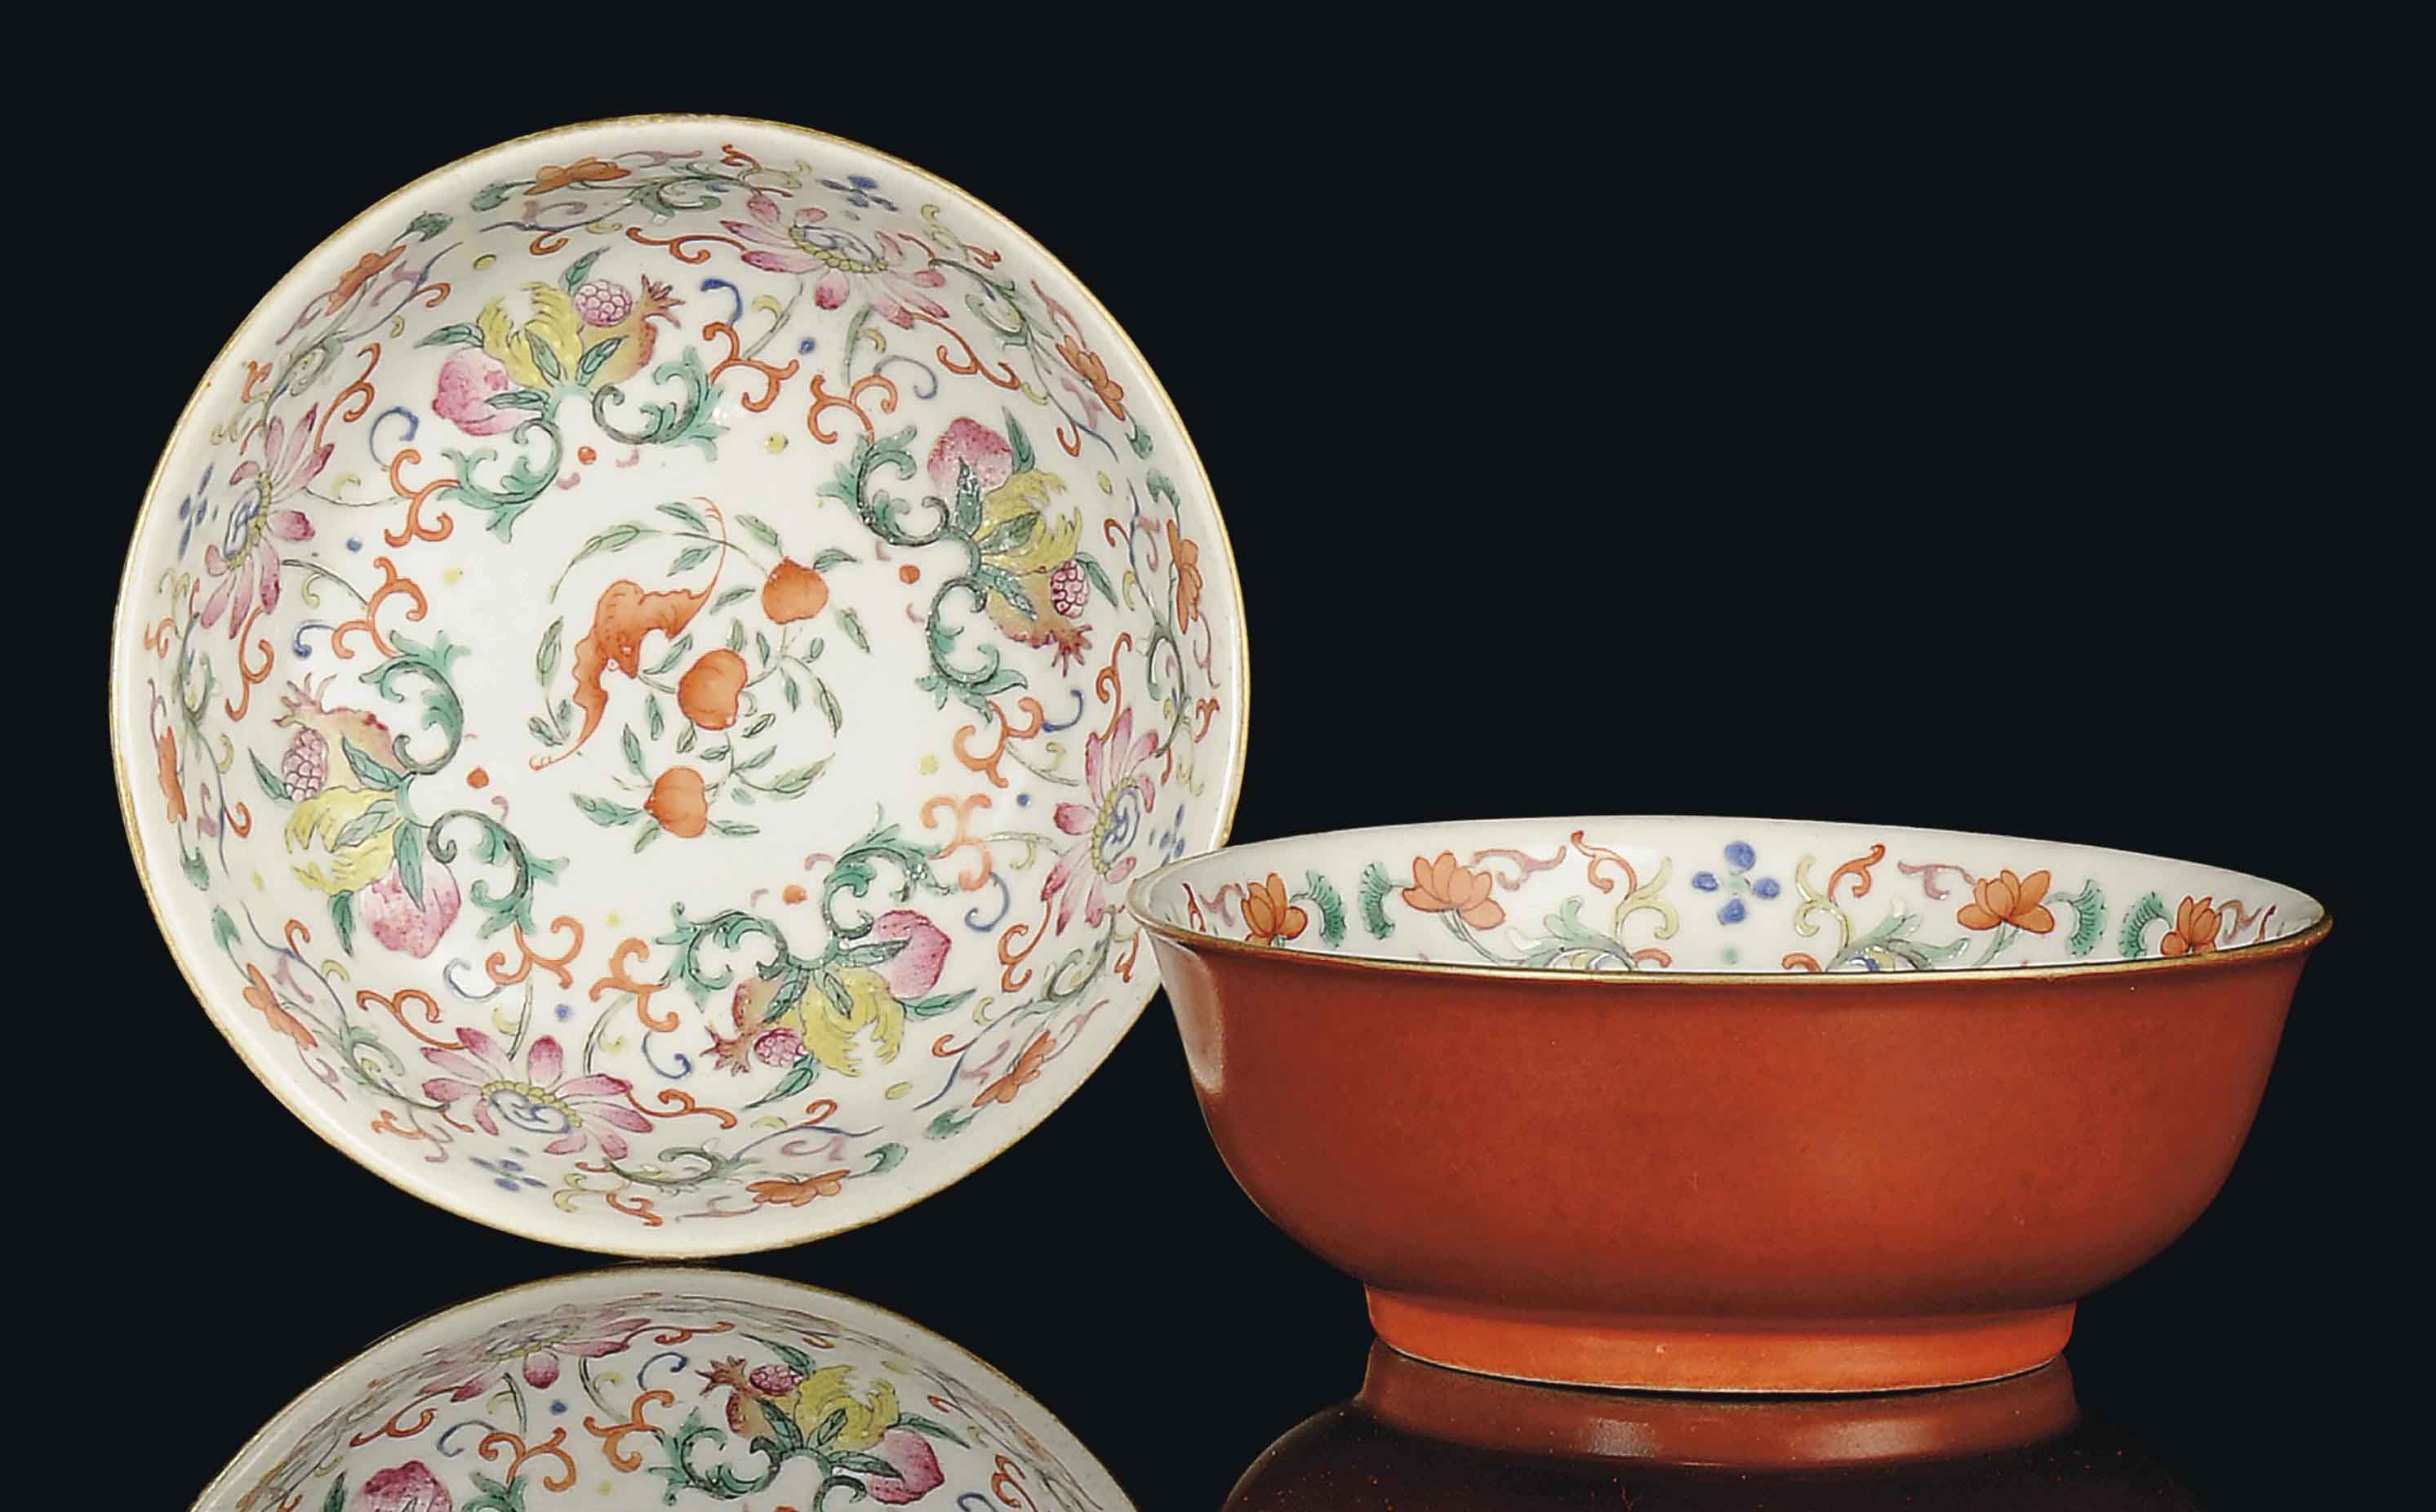 A PAIR OF FAMILLE ROSE BOWLS